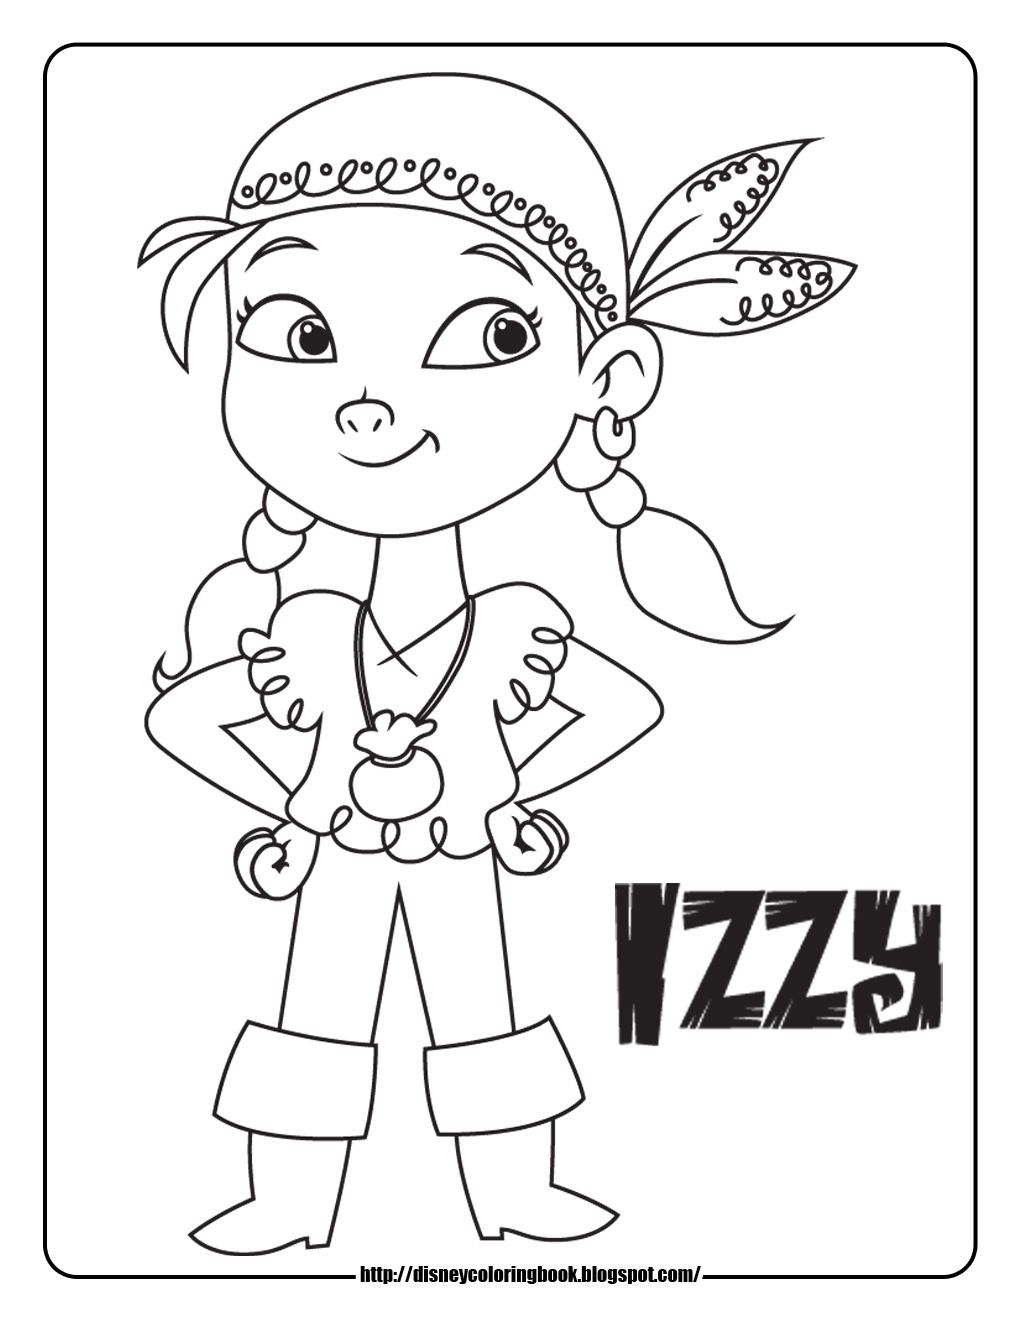 Jake And The Neverland Pirates 1 Free Disney Coloring Sheets